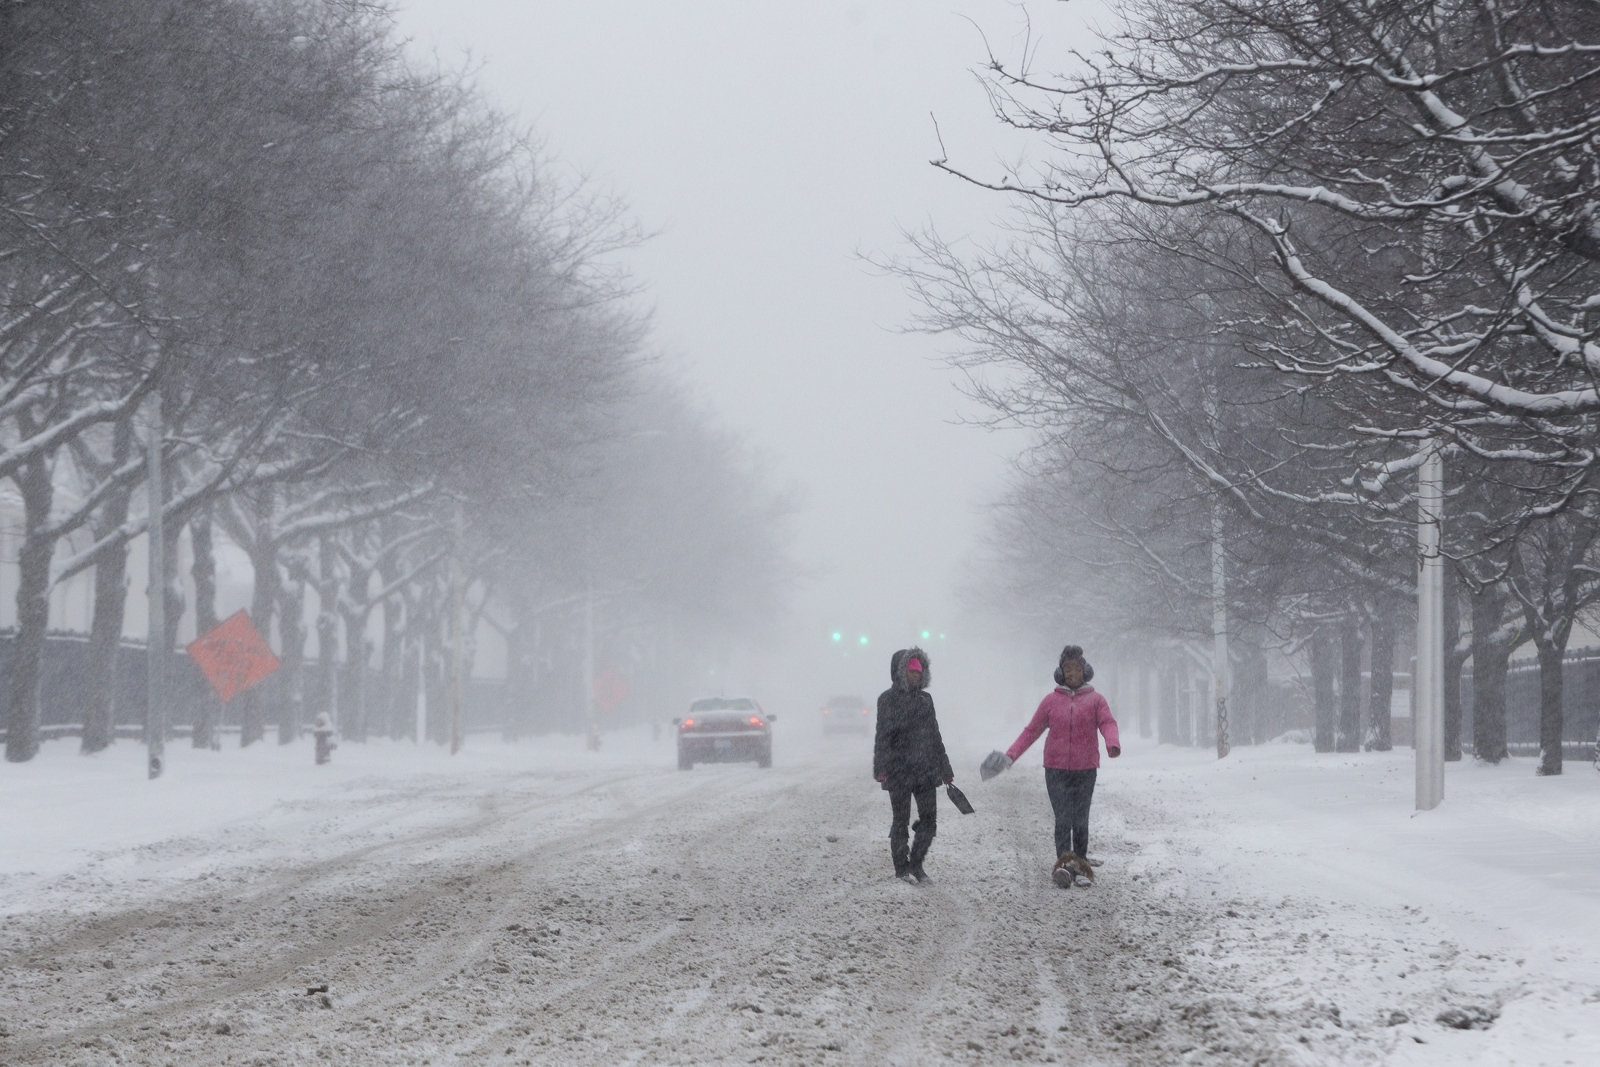 Two young girls walk through a snow storm in the Woodbridge neighborhood of Detroit, Mich. Detroit Metro had the nation's worst airplane delays and cancellations including 269 cancellations and 542 delays.